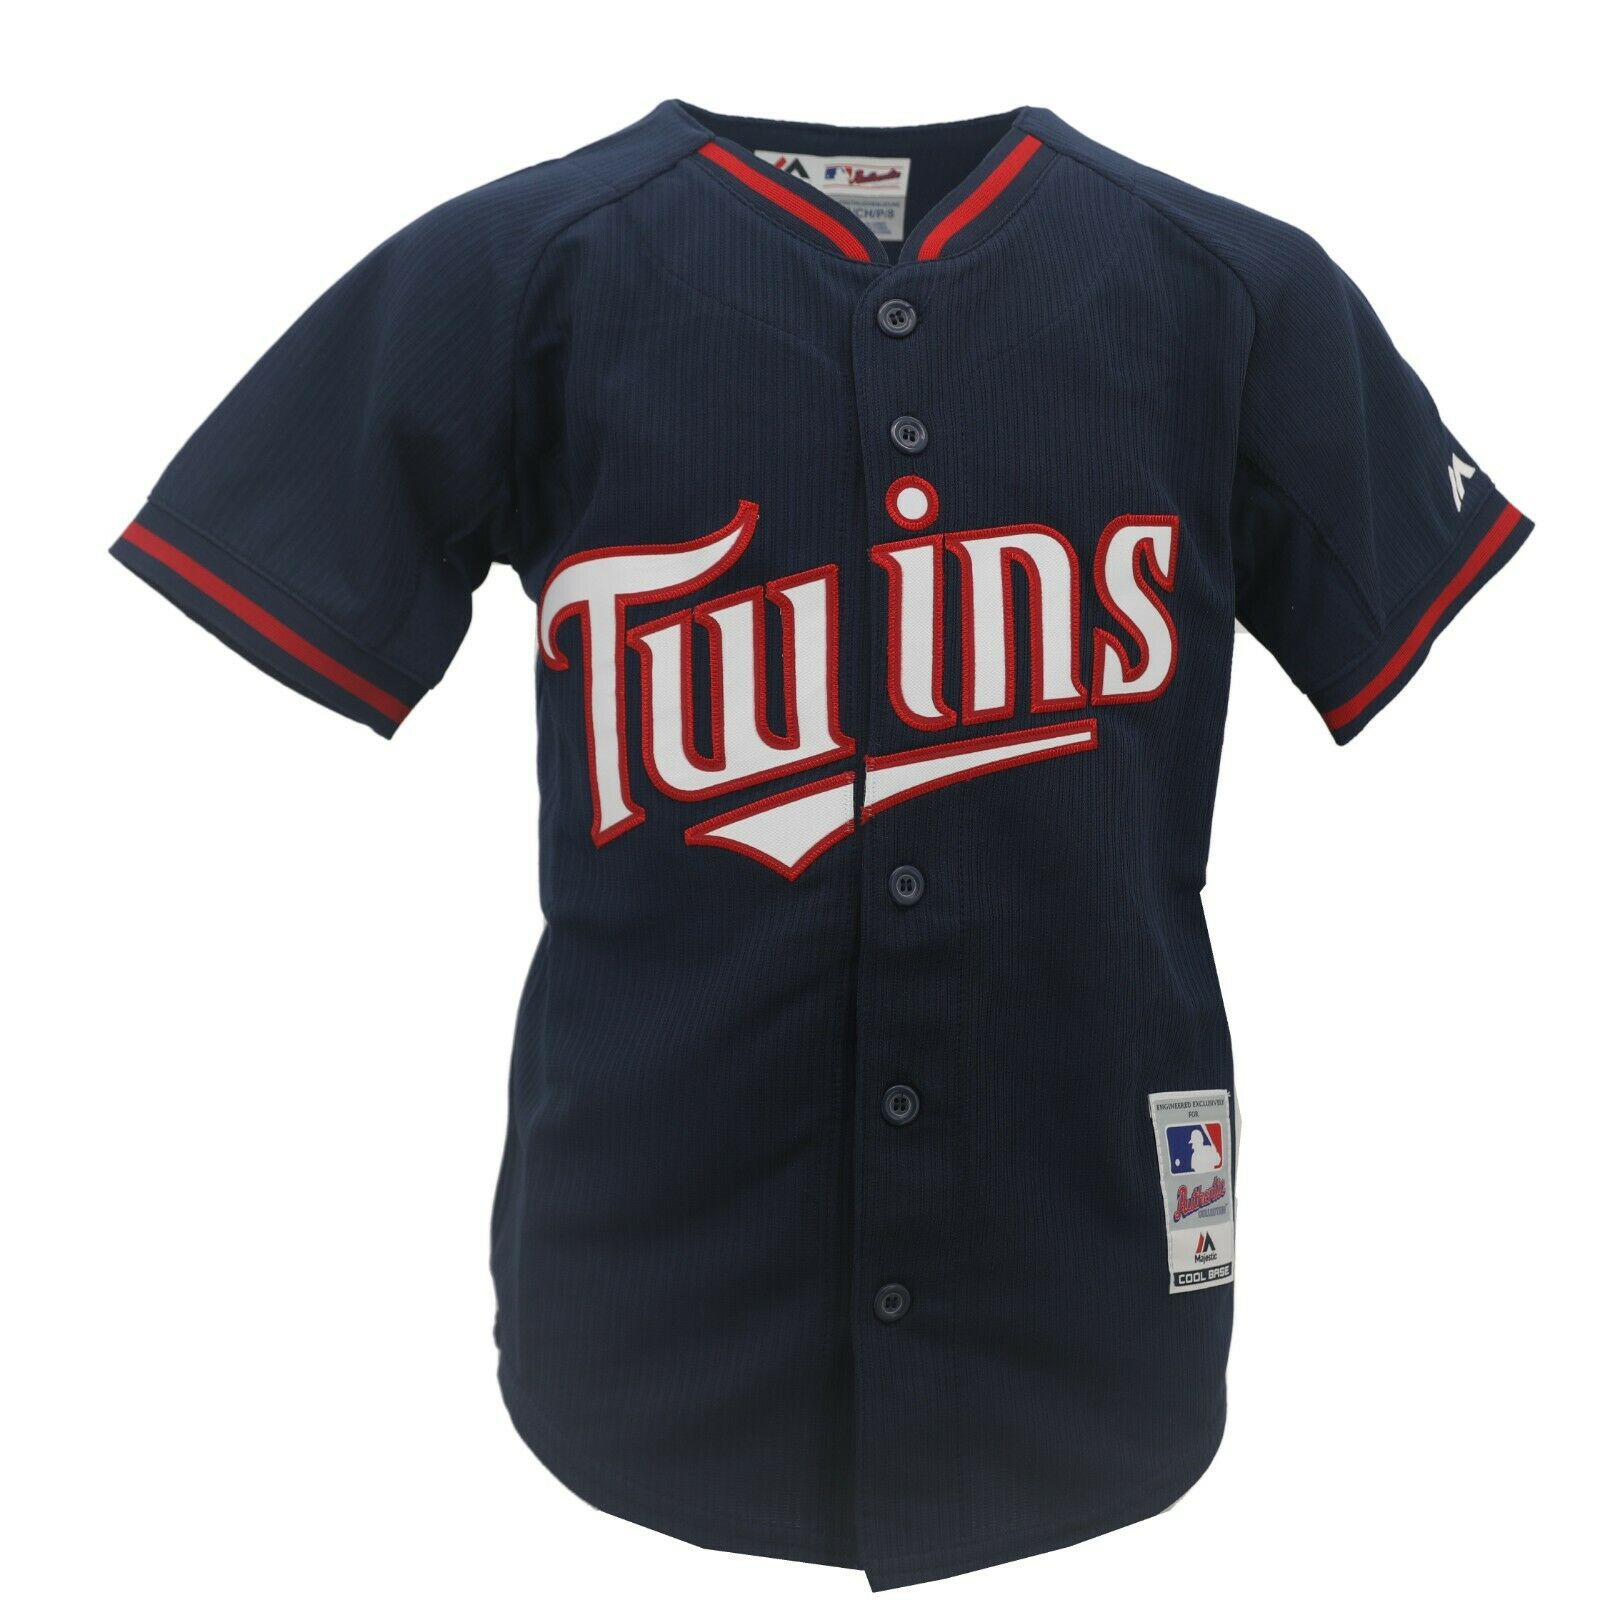 finest selection f427b 0aa7f Details about Minnesota Twins Authentic MLB Majestic Cool Base Kids Youth  Size Jersey New Tags